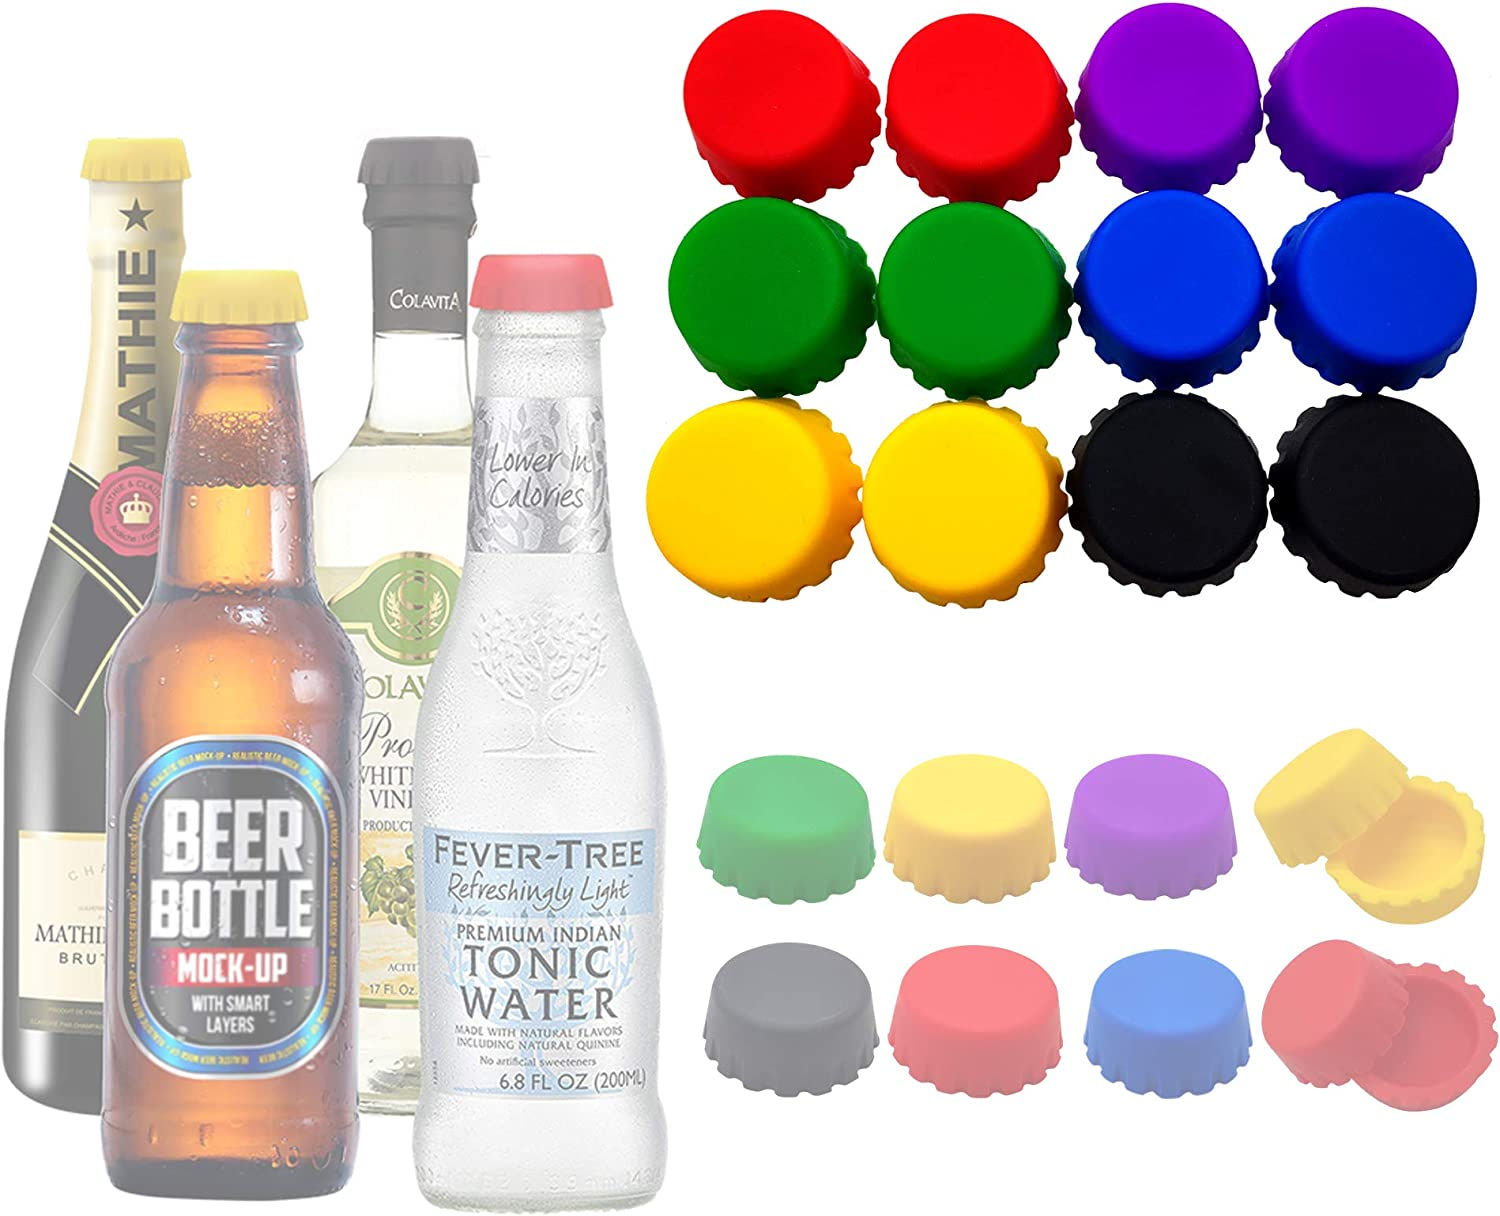 Beer Bottle Caps, Silicone Bottle Caps Reusable Bottle Stopper, Cola Soda Bobble caps to Keep Wine, Beer, Cola, Soft Drink, Soda Fresh for Days, Perfect for Party Kitchen